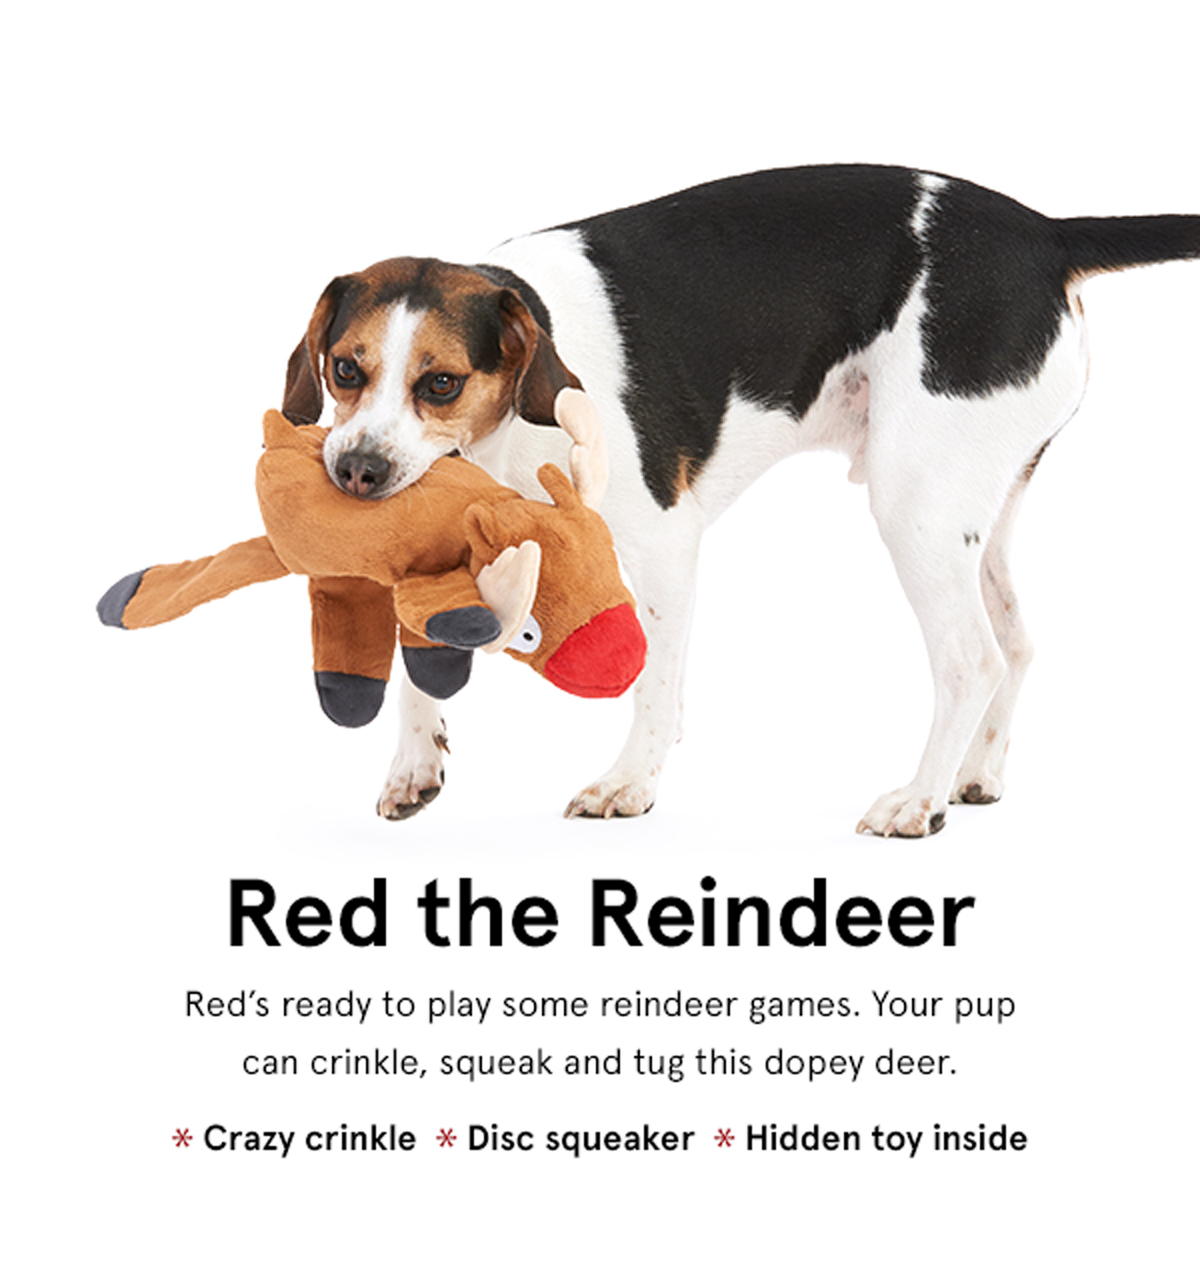 Red the Reindeer